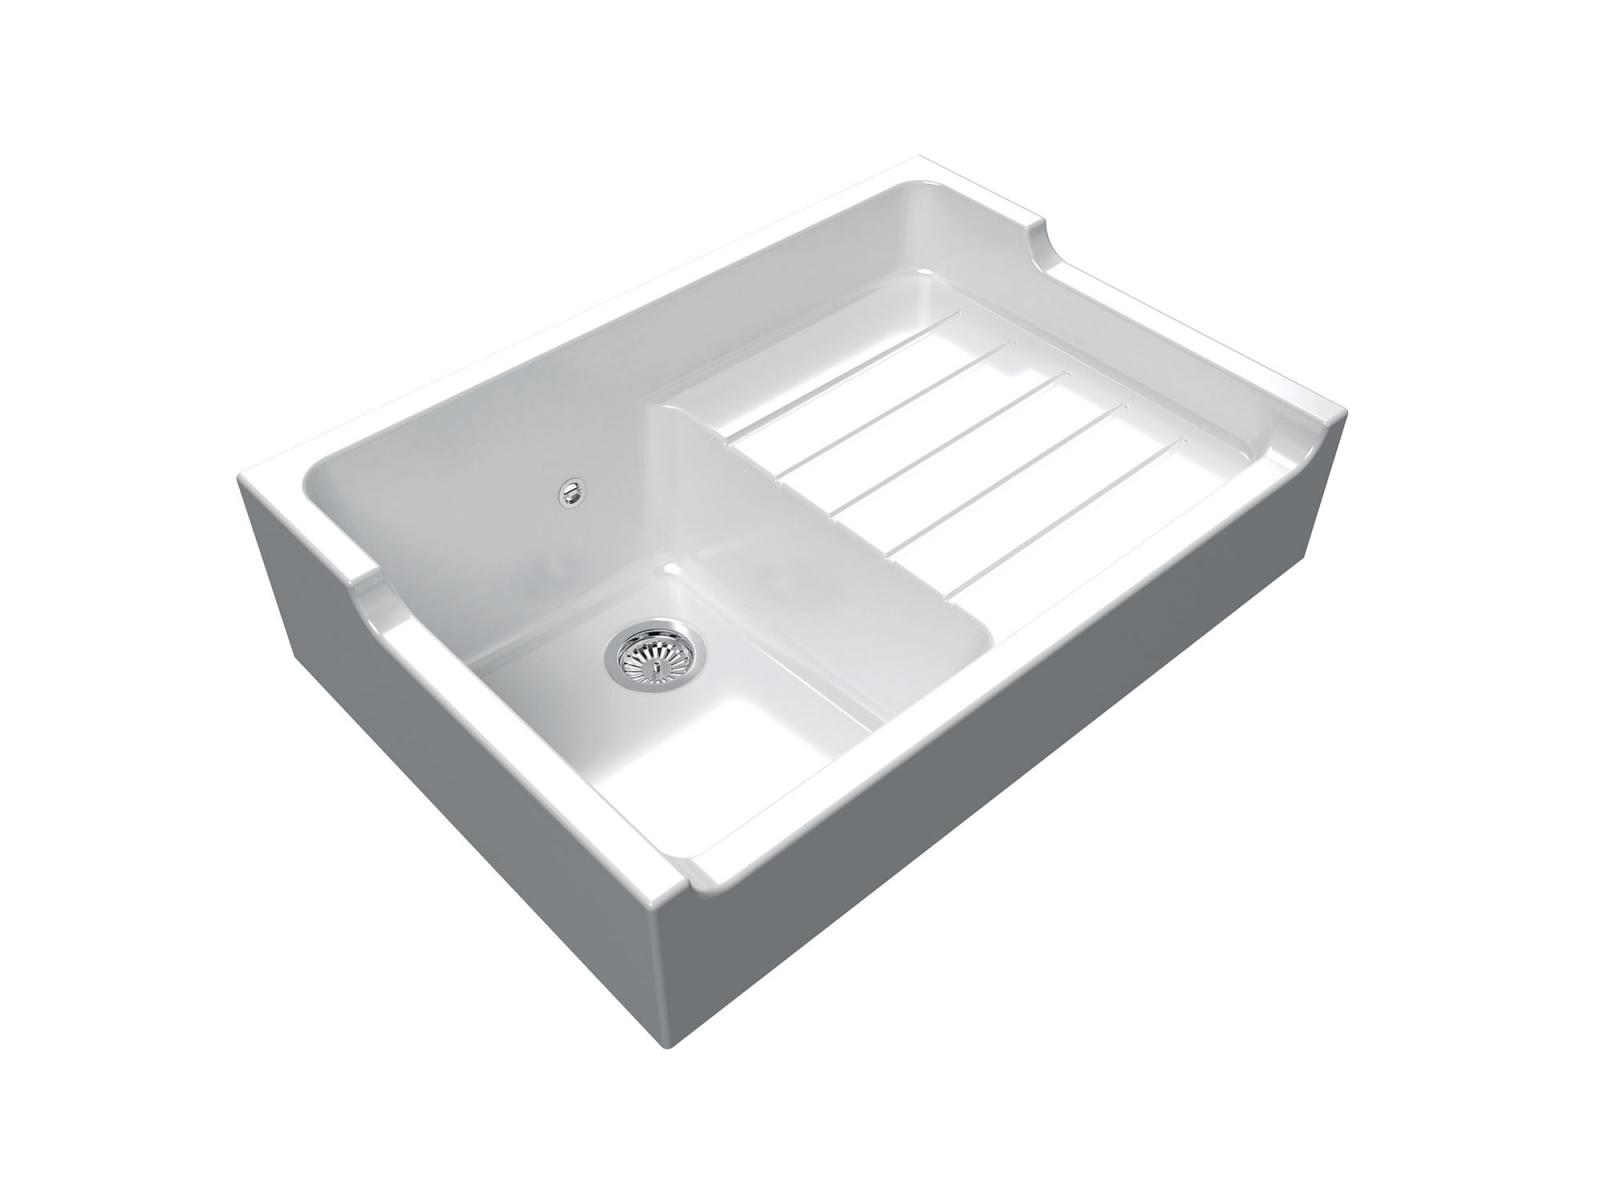 High-quality sink Francois 1 - single bowl, ceramic - ambience 3